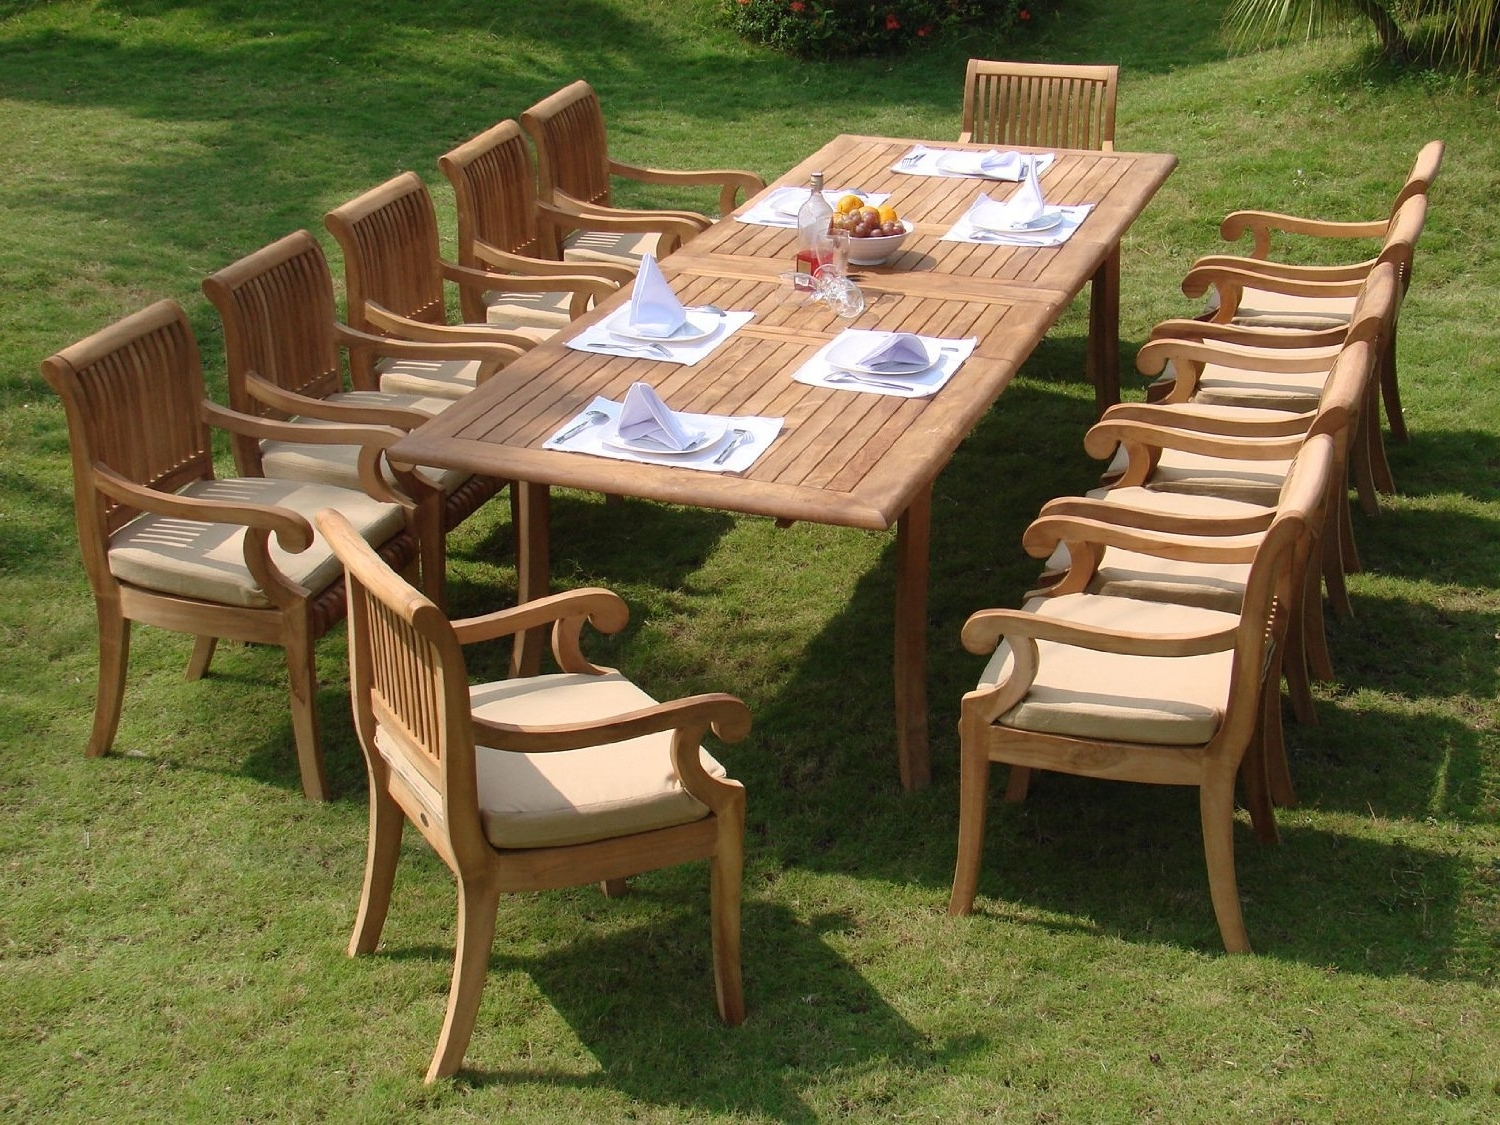 Compare And Choose: Reviewing The Best Teak Outdoor Dining Sets With Well Liked Outdoor Dining Table And Chairs Sets (View 12 of 25)